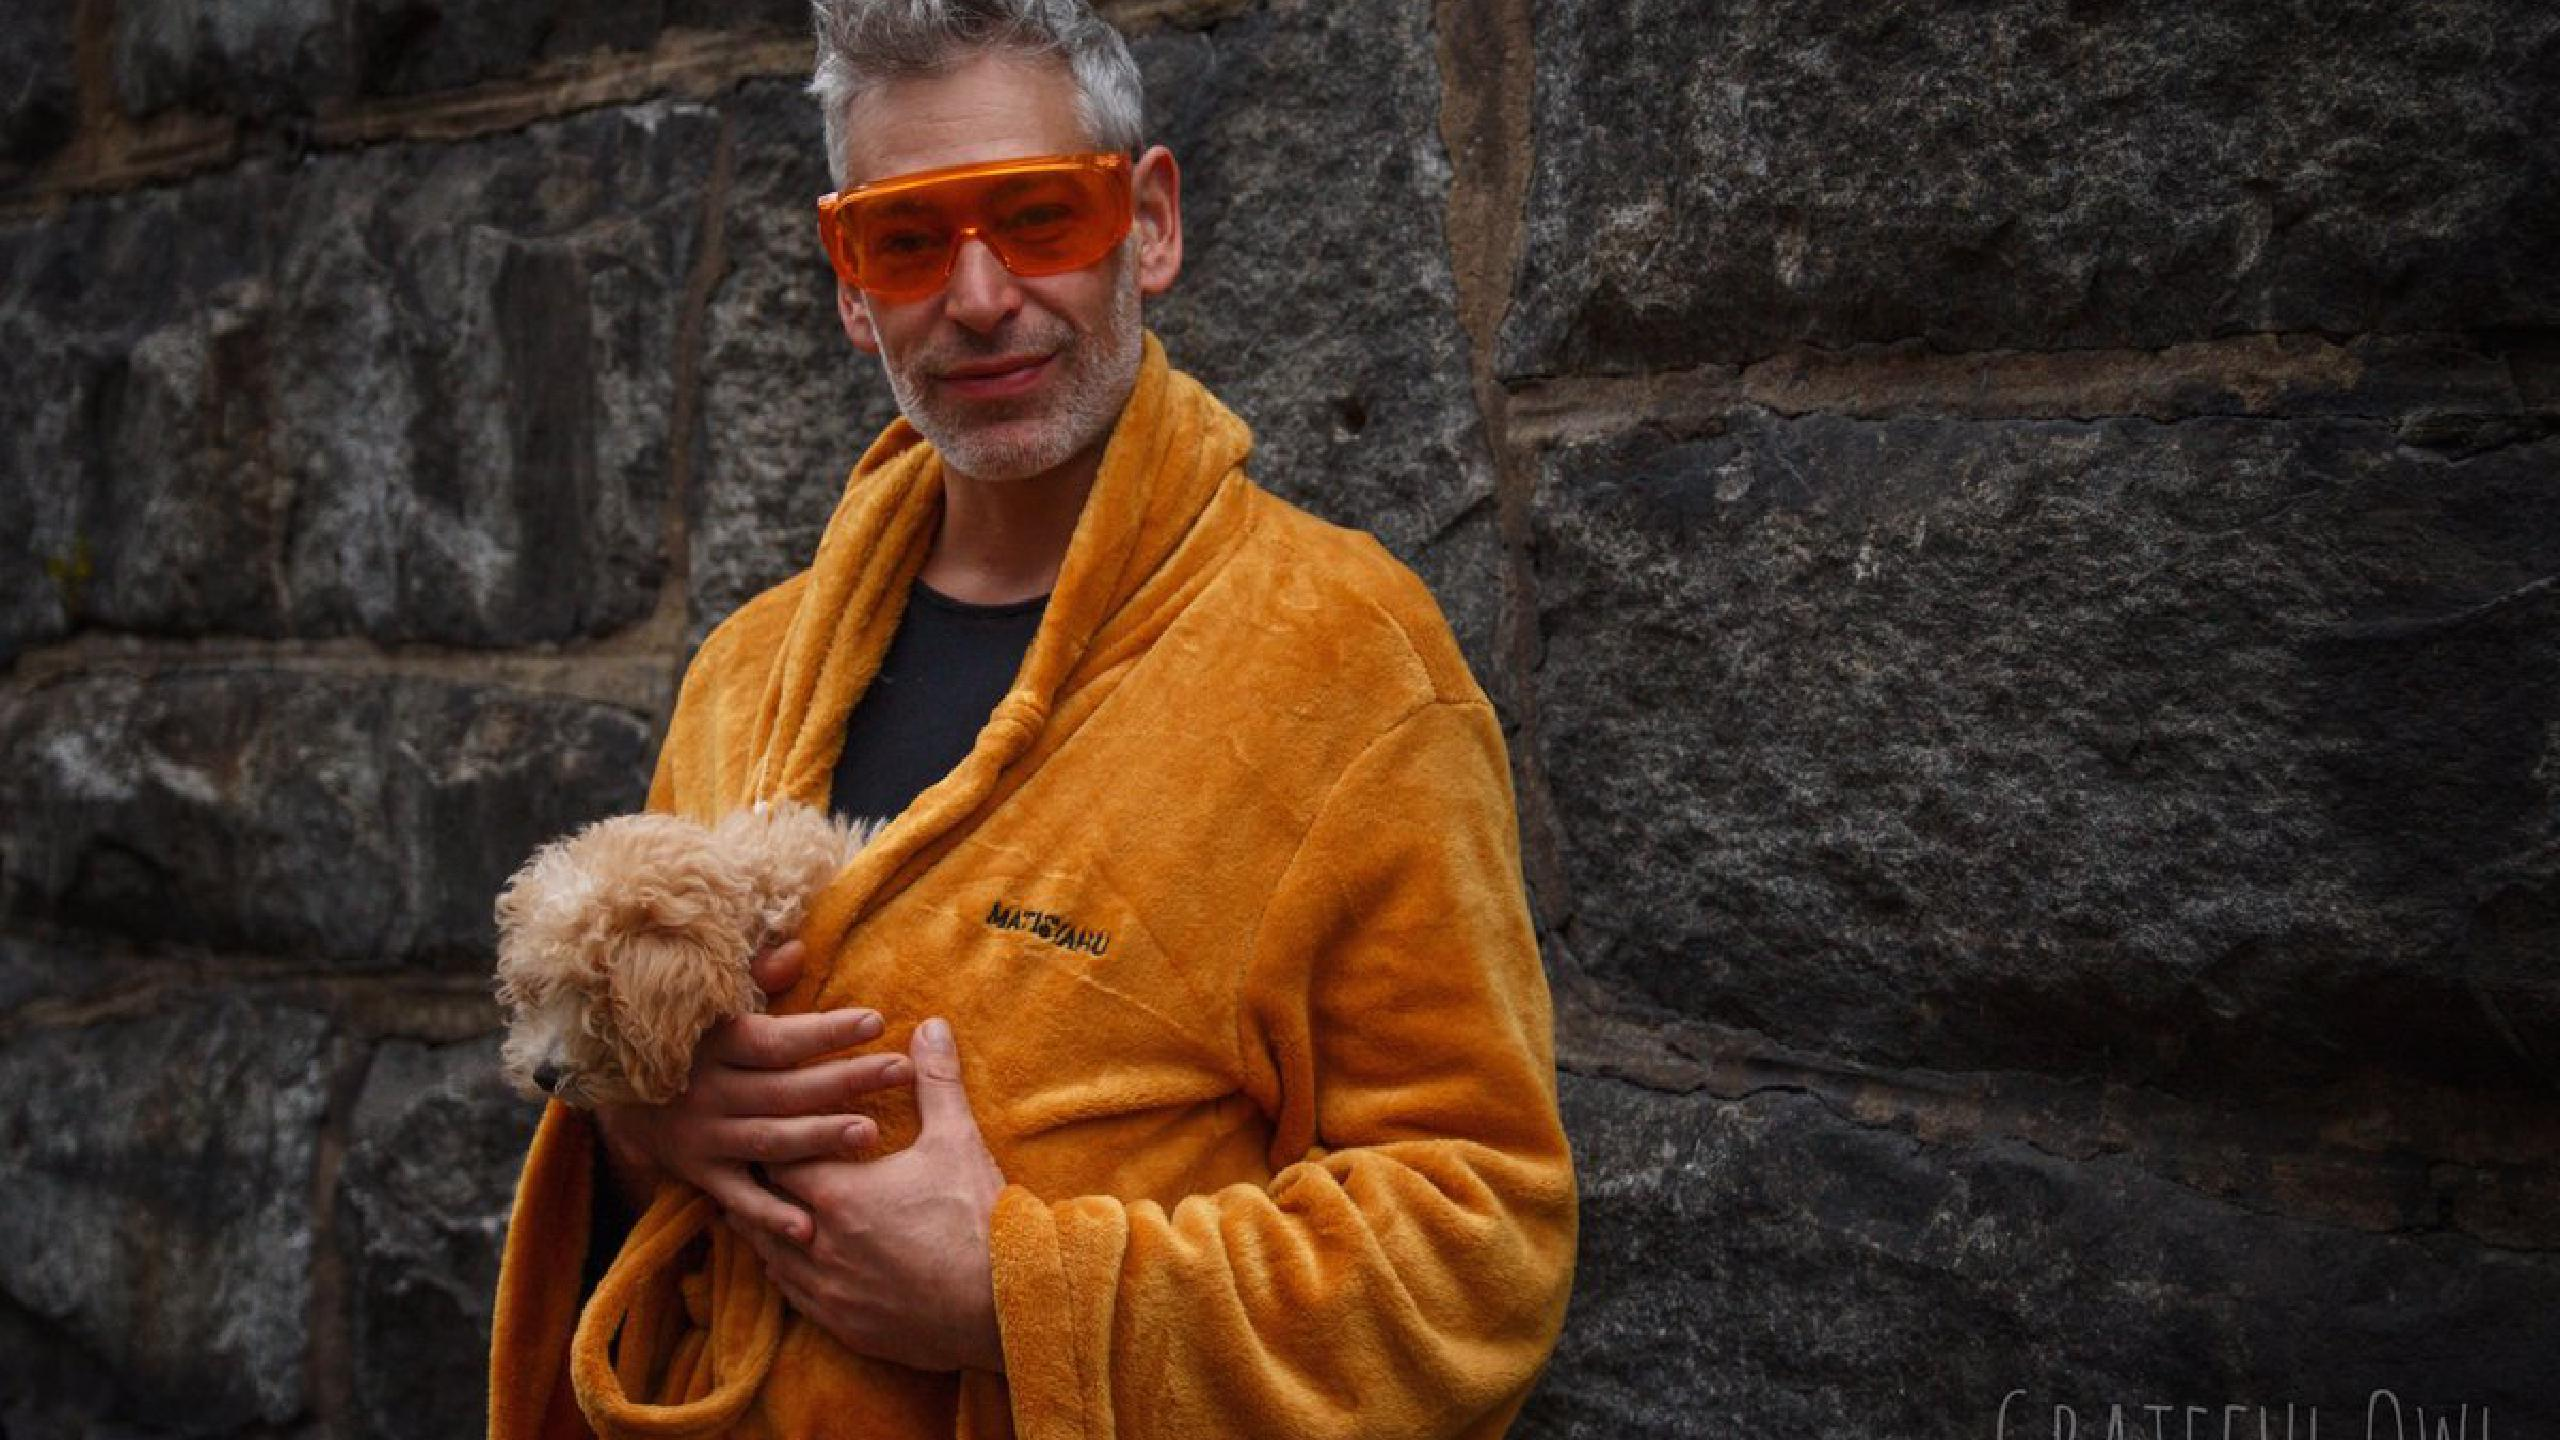 Matisyahu Tour 2020 Matisyahu tour dates 2019 2020. Matisyahu tickets and concerts